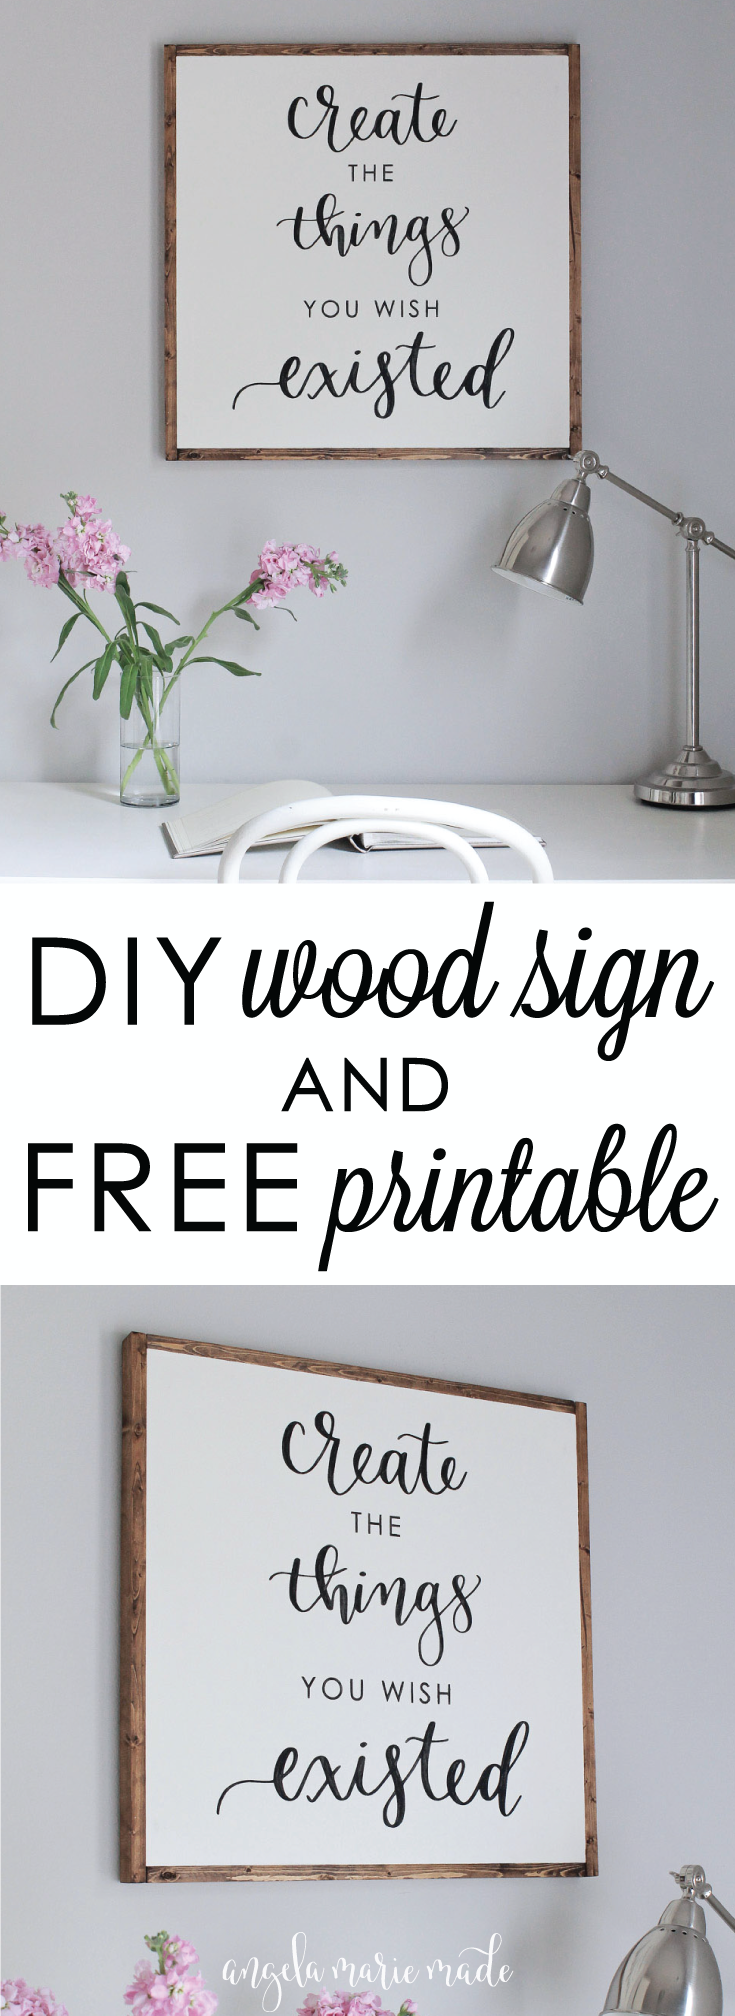 Diy wood sign with calligraphy quote office makeover rustic wood